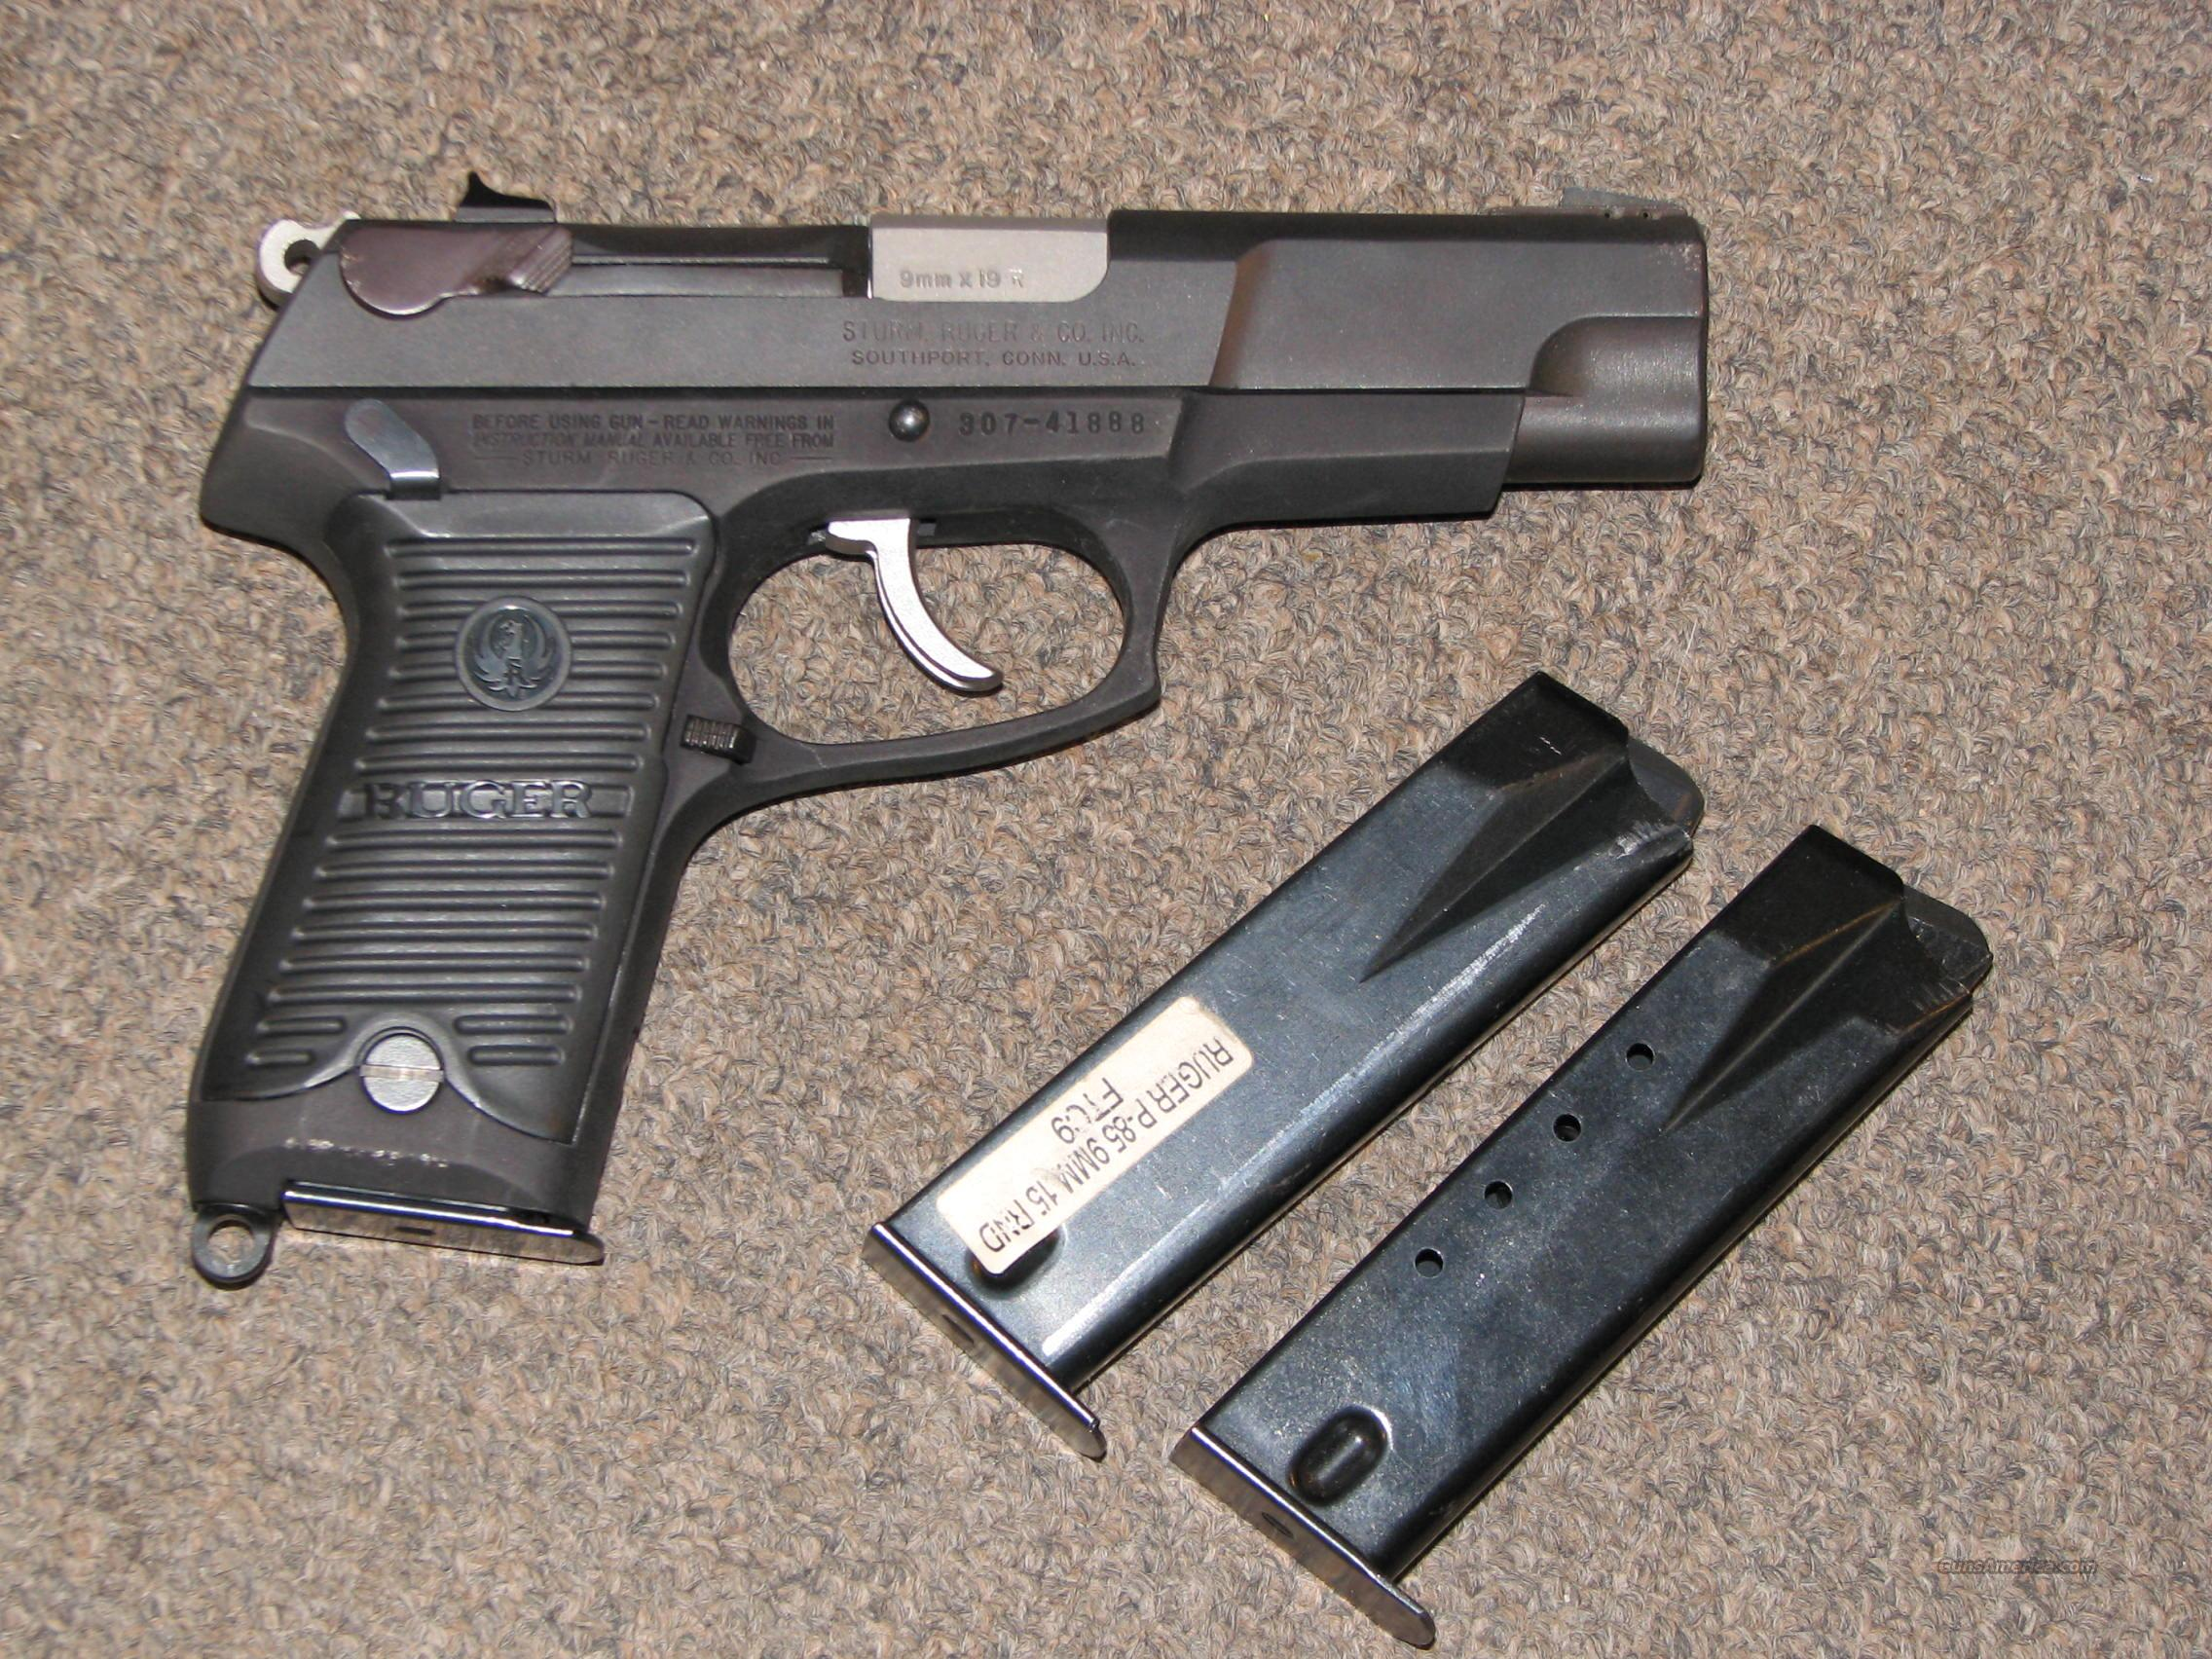 RUGER P-89 9mm w/ 3 MAGS  Guns > Pistols > Ruger Semi-Auto Pistols > P-Series